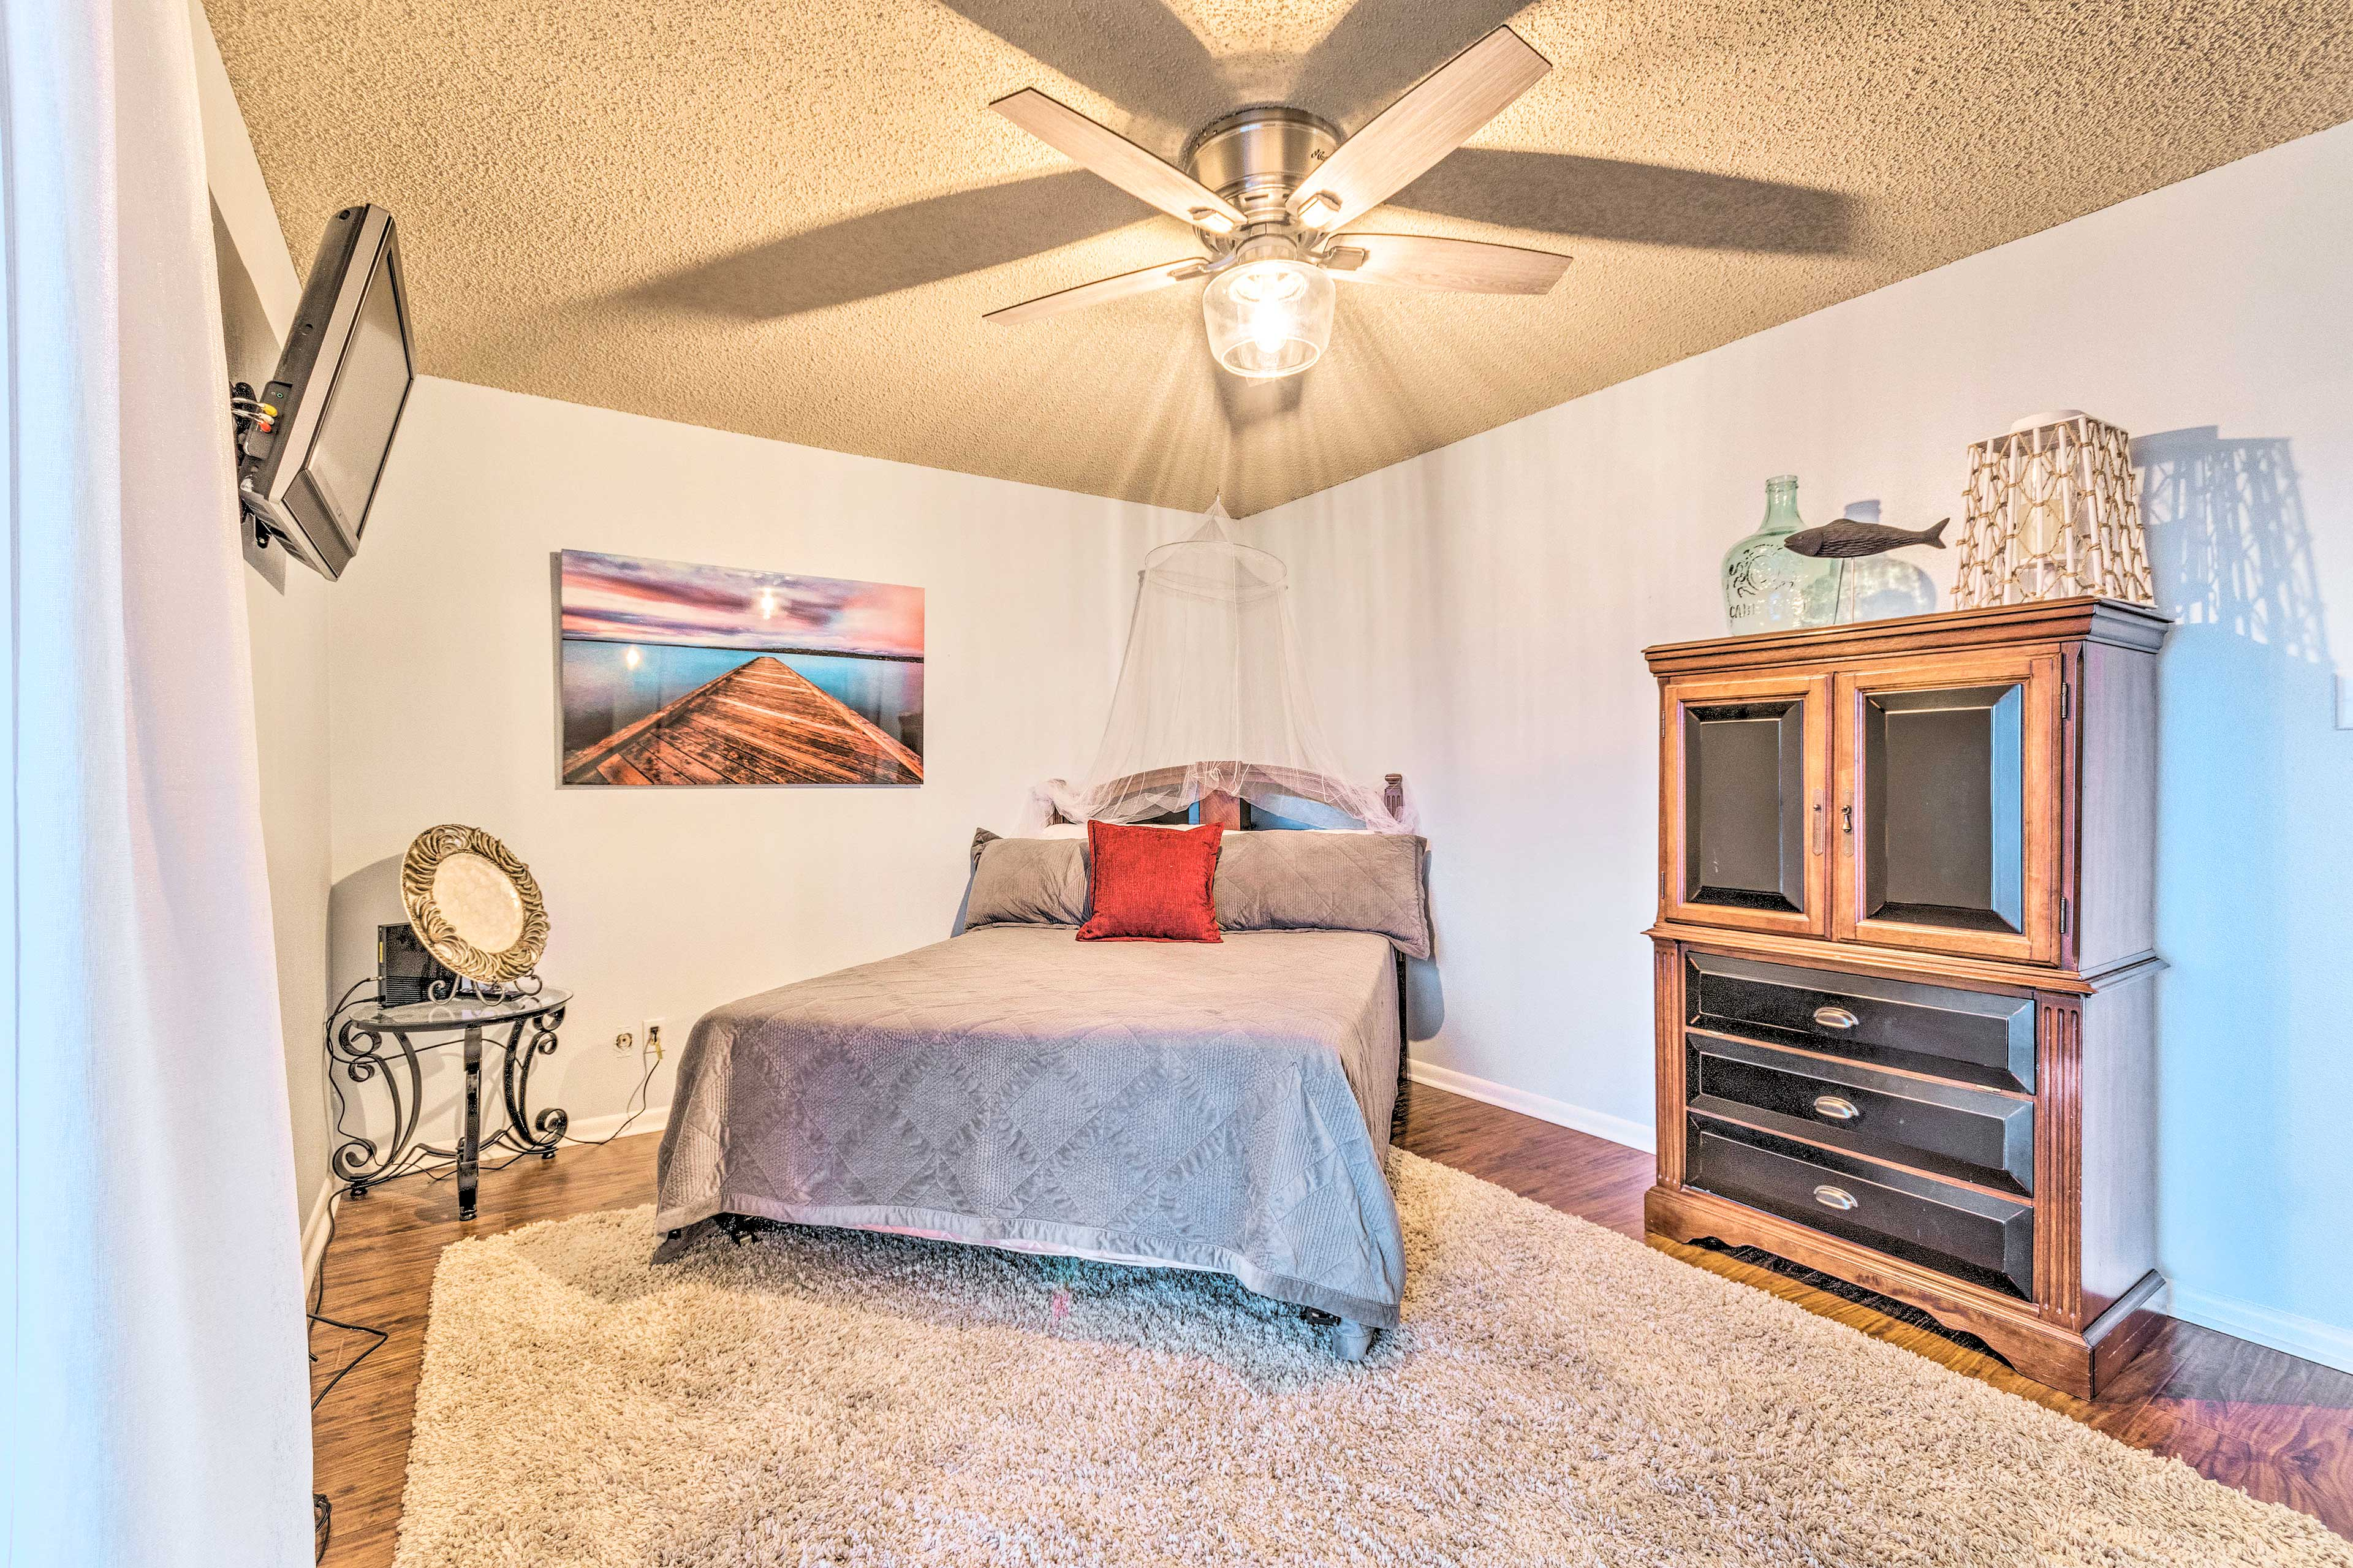 Rest up for tomorrow's lake outing in one of 2 bedrooms.